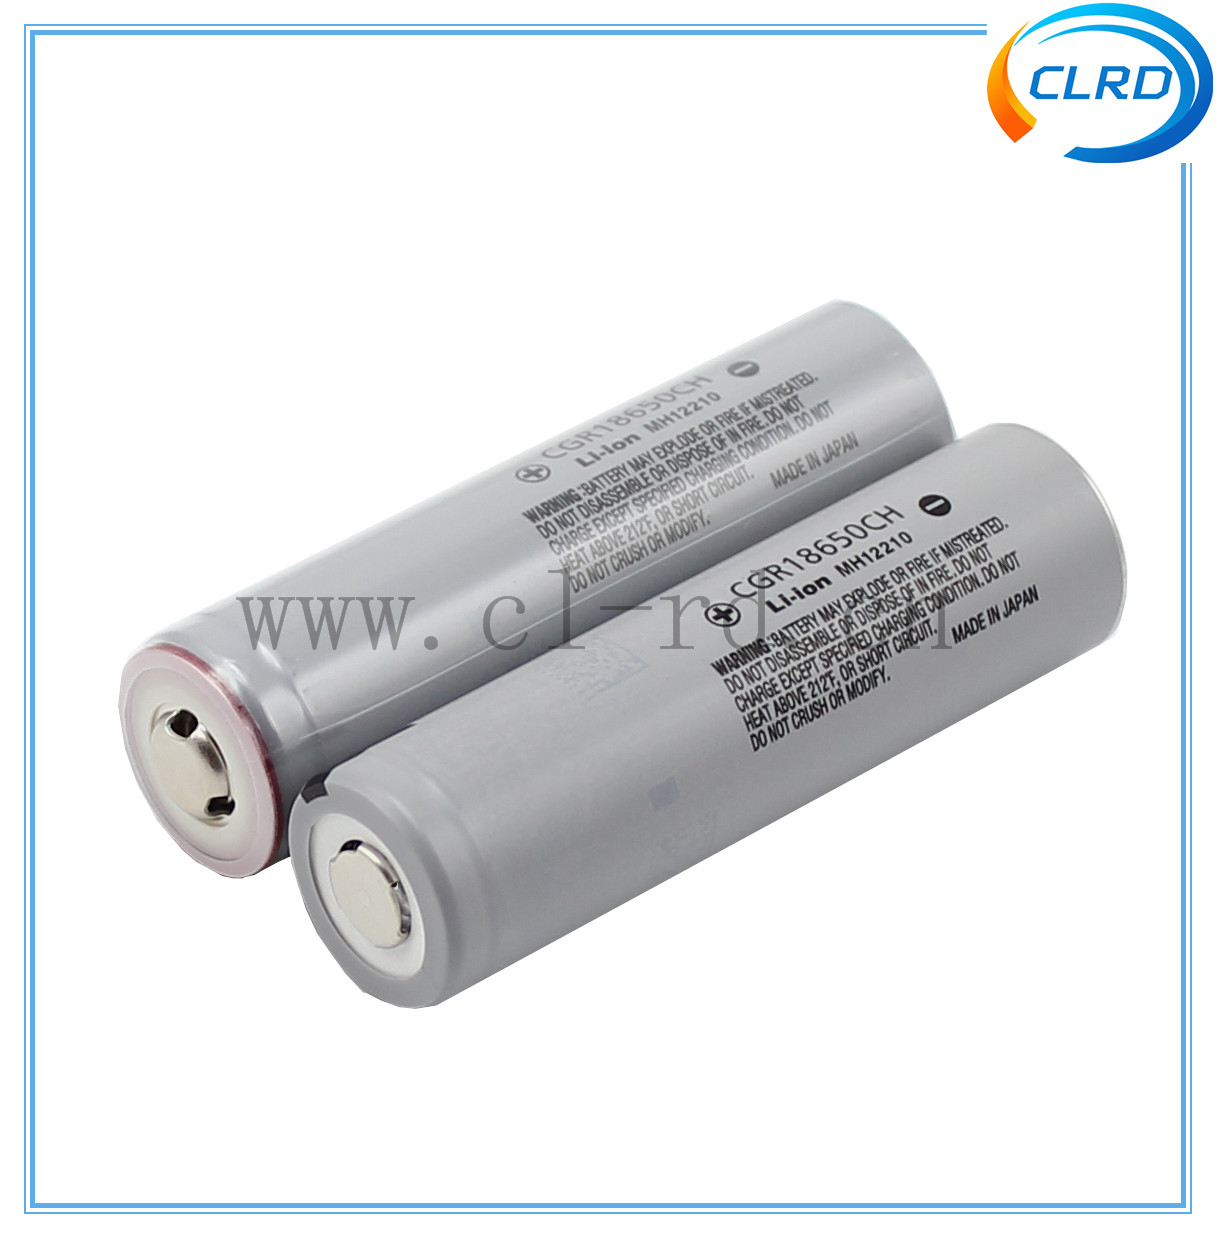 18650 CGR18650CH 2250mAh High Discharge Button Top protected CGR 18650 CH 2250mAh 10A discharge li-ion battery in stock